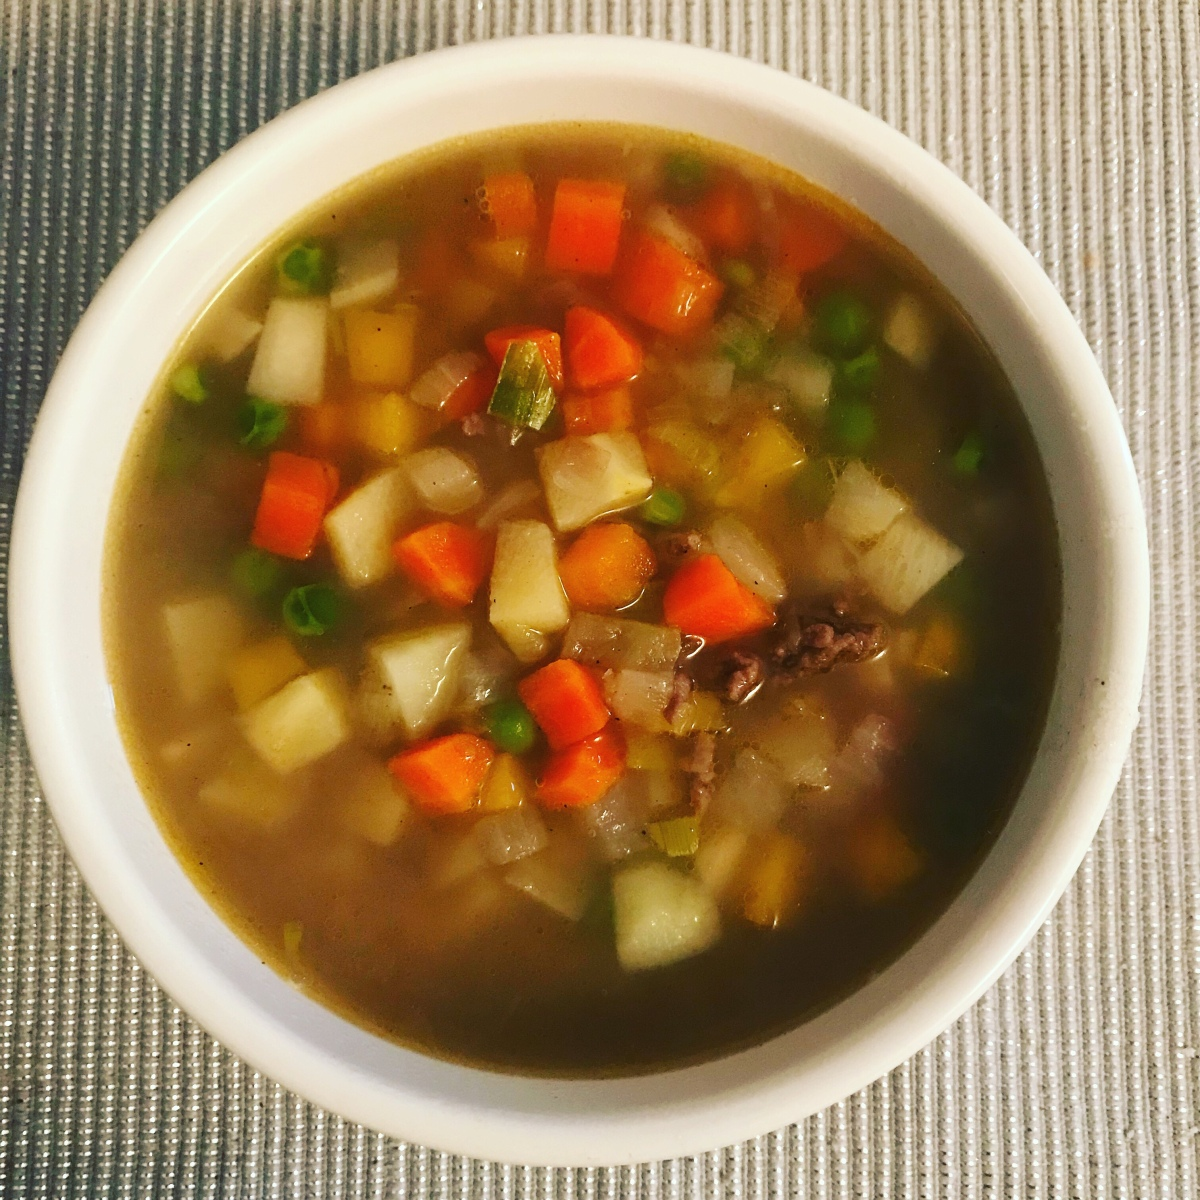 Mince beef soup